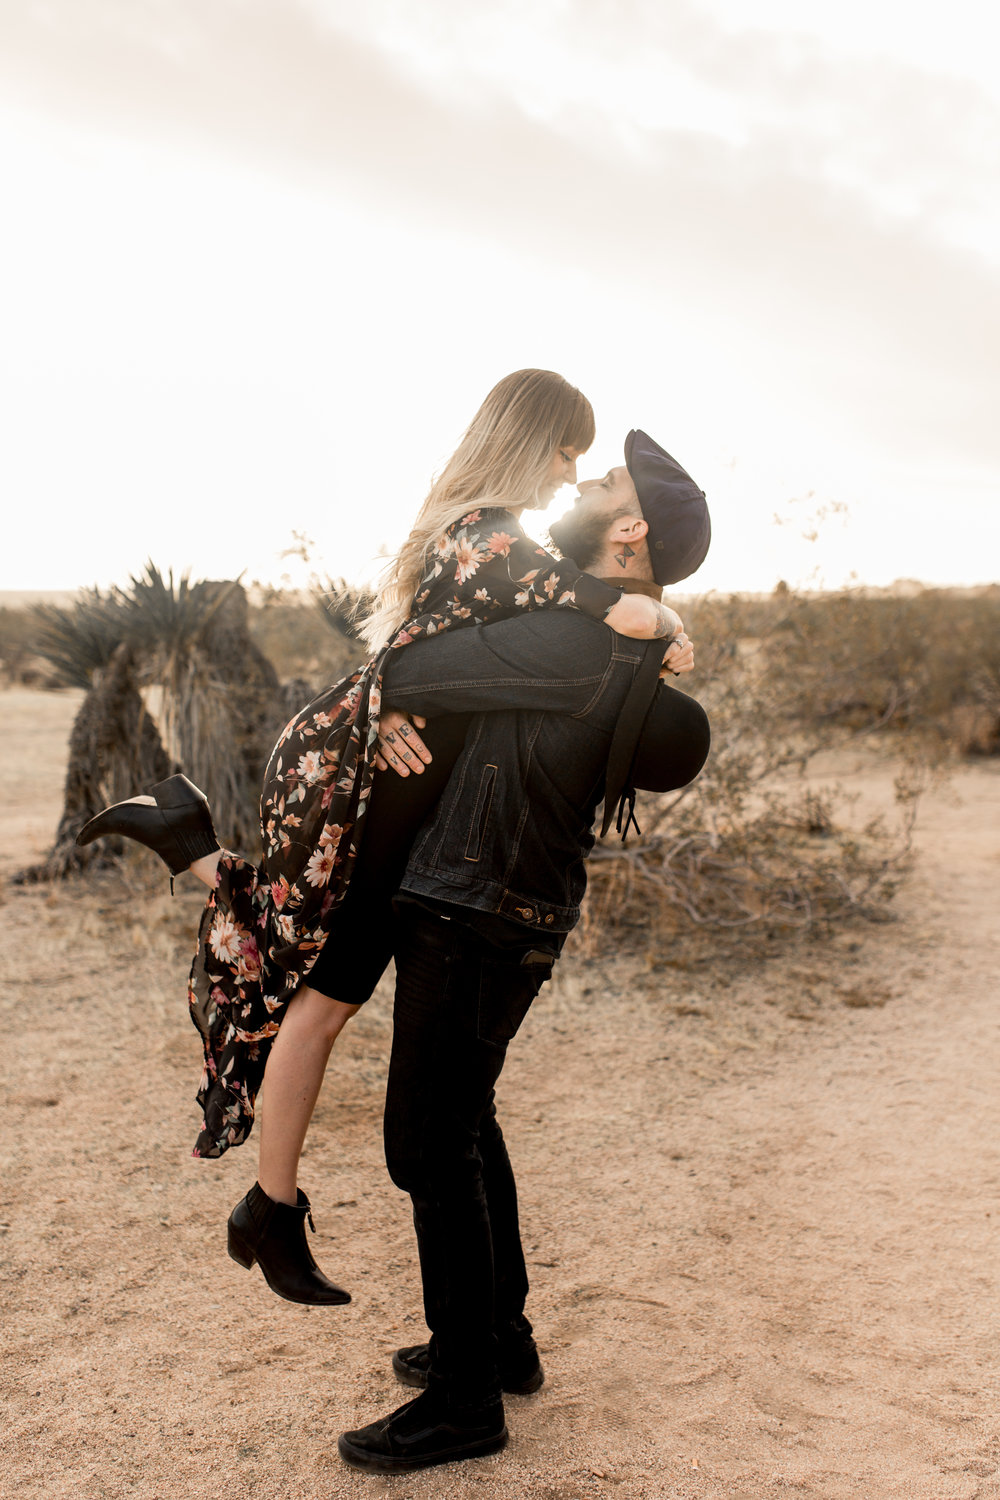 nicole-daacke-photography-joshua-tree-cactus-garden-engagement-photos-joshua-tree-national-park-enegagement-session-edgy-hipster-california-cholla-garden-golden-sunset-session-54.jpg